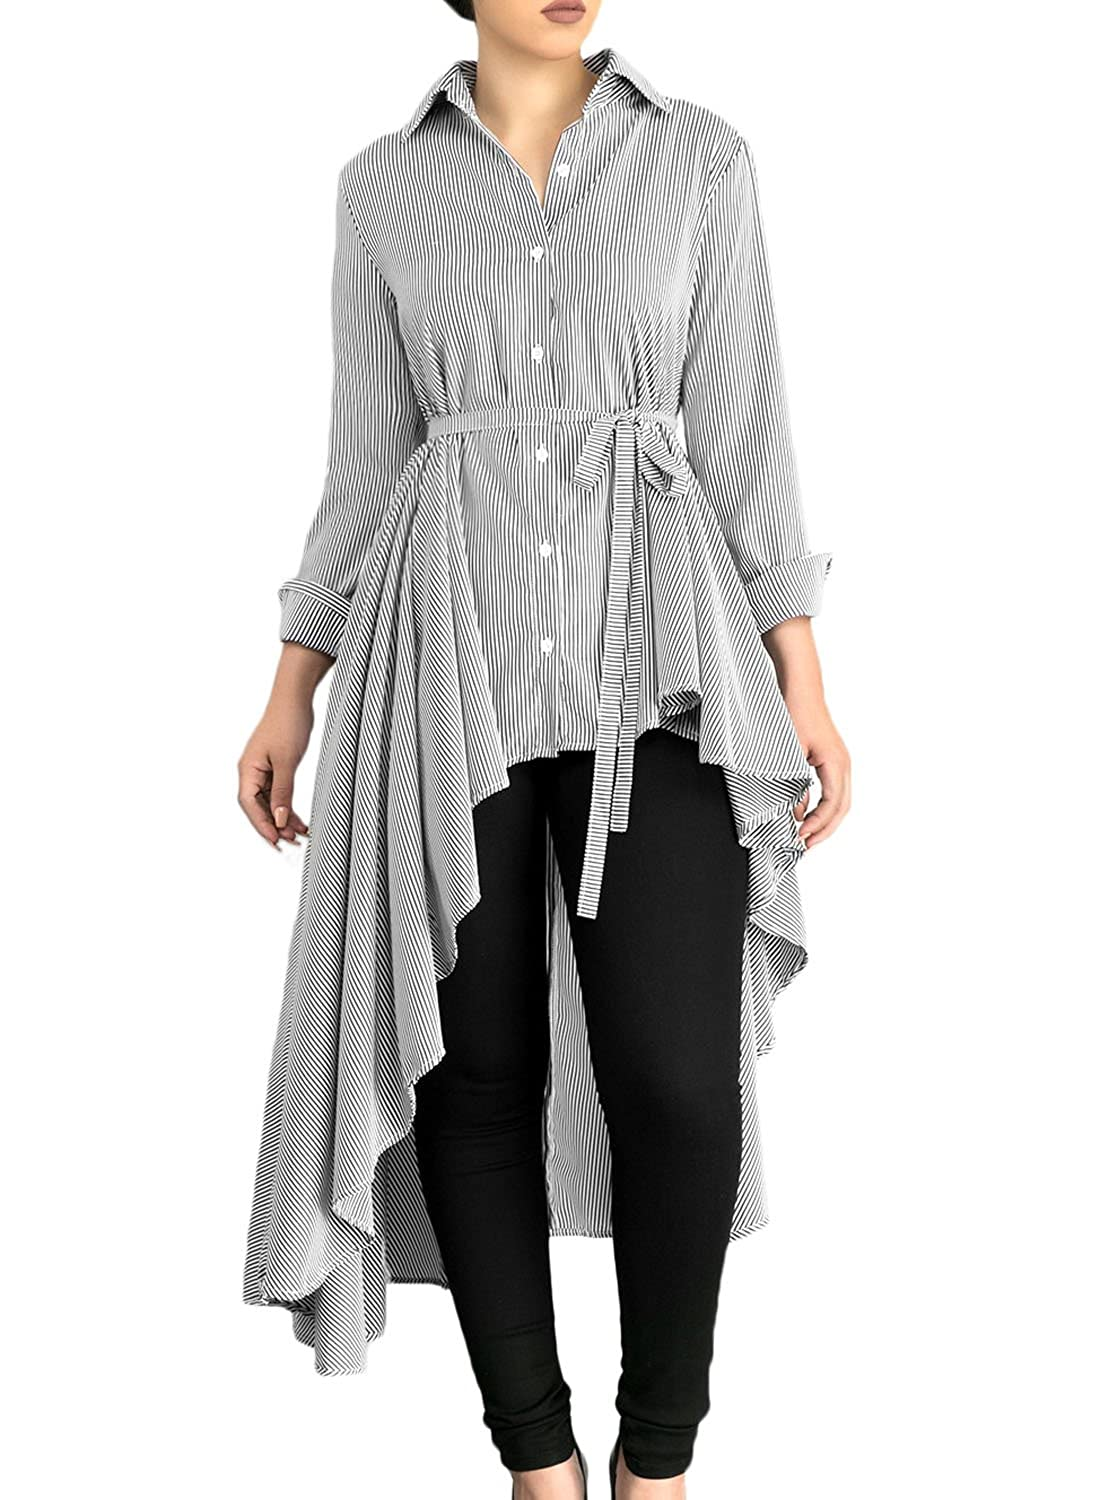 0b322d87 Dokotoo Womens Long Sleeve Button Down High Low Irregular Stripe Tops T  Shirts with Belt at Amazon Women's Clothing store: